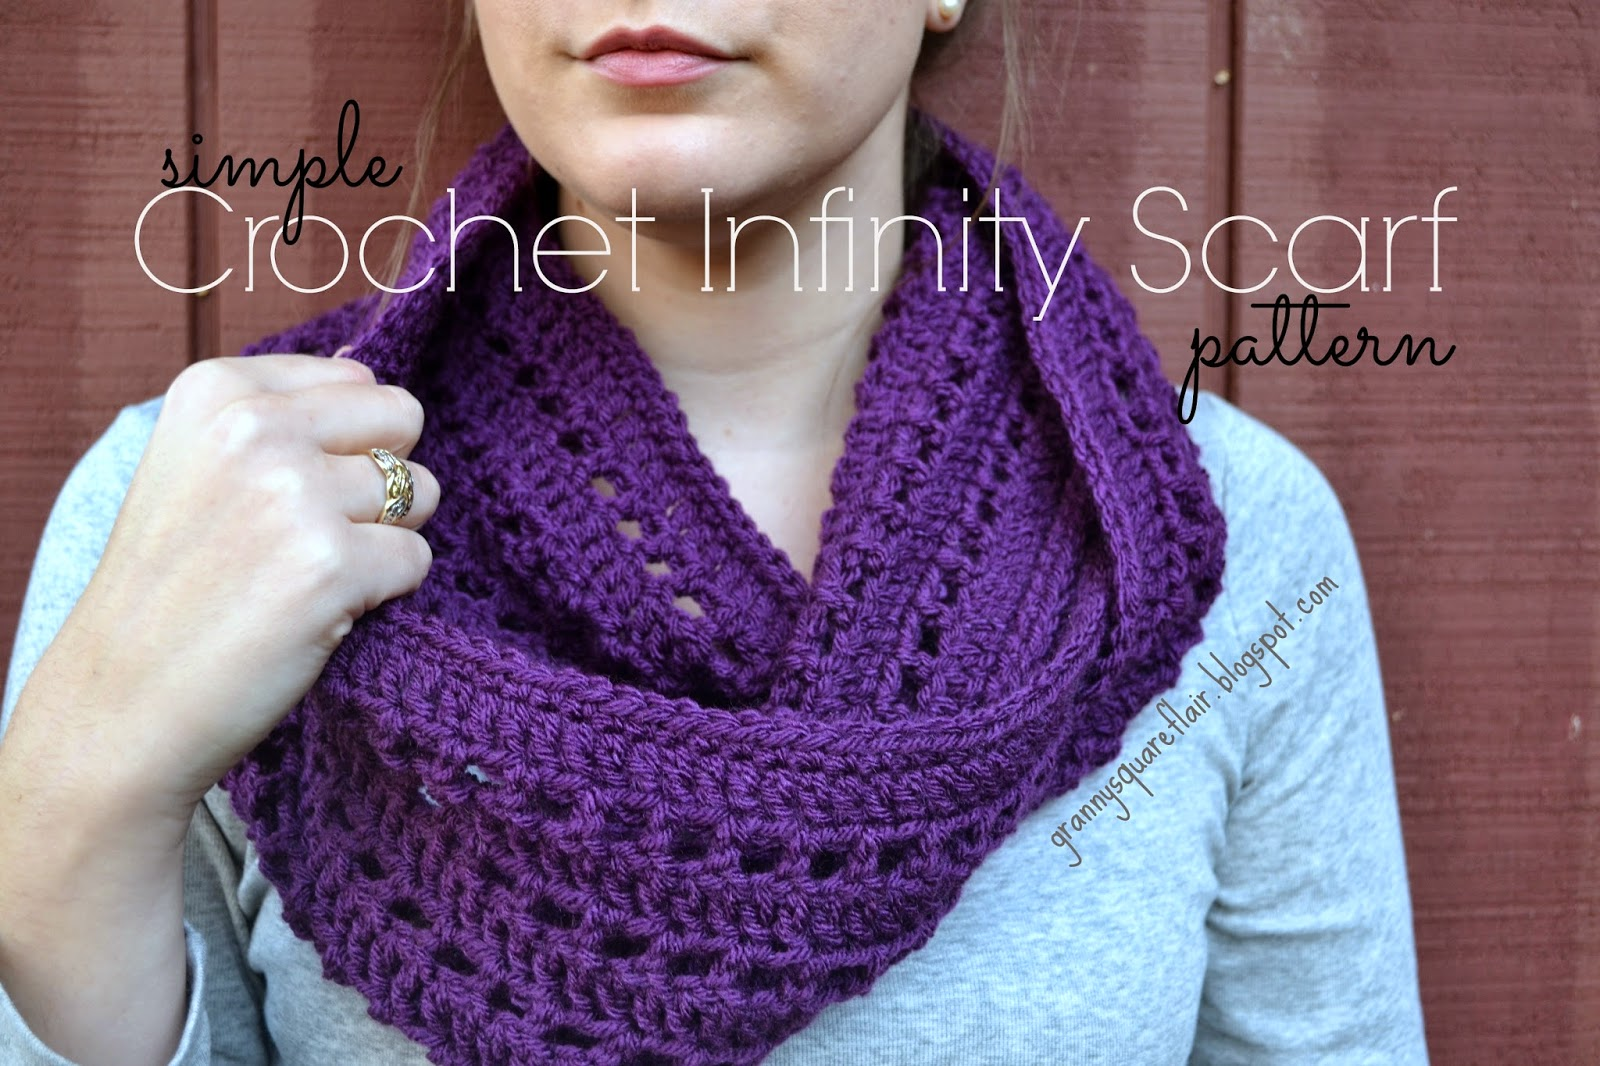 Granny Square Flair: Simple Crochet Infinity Scarf Patteren